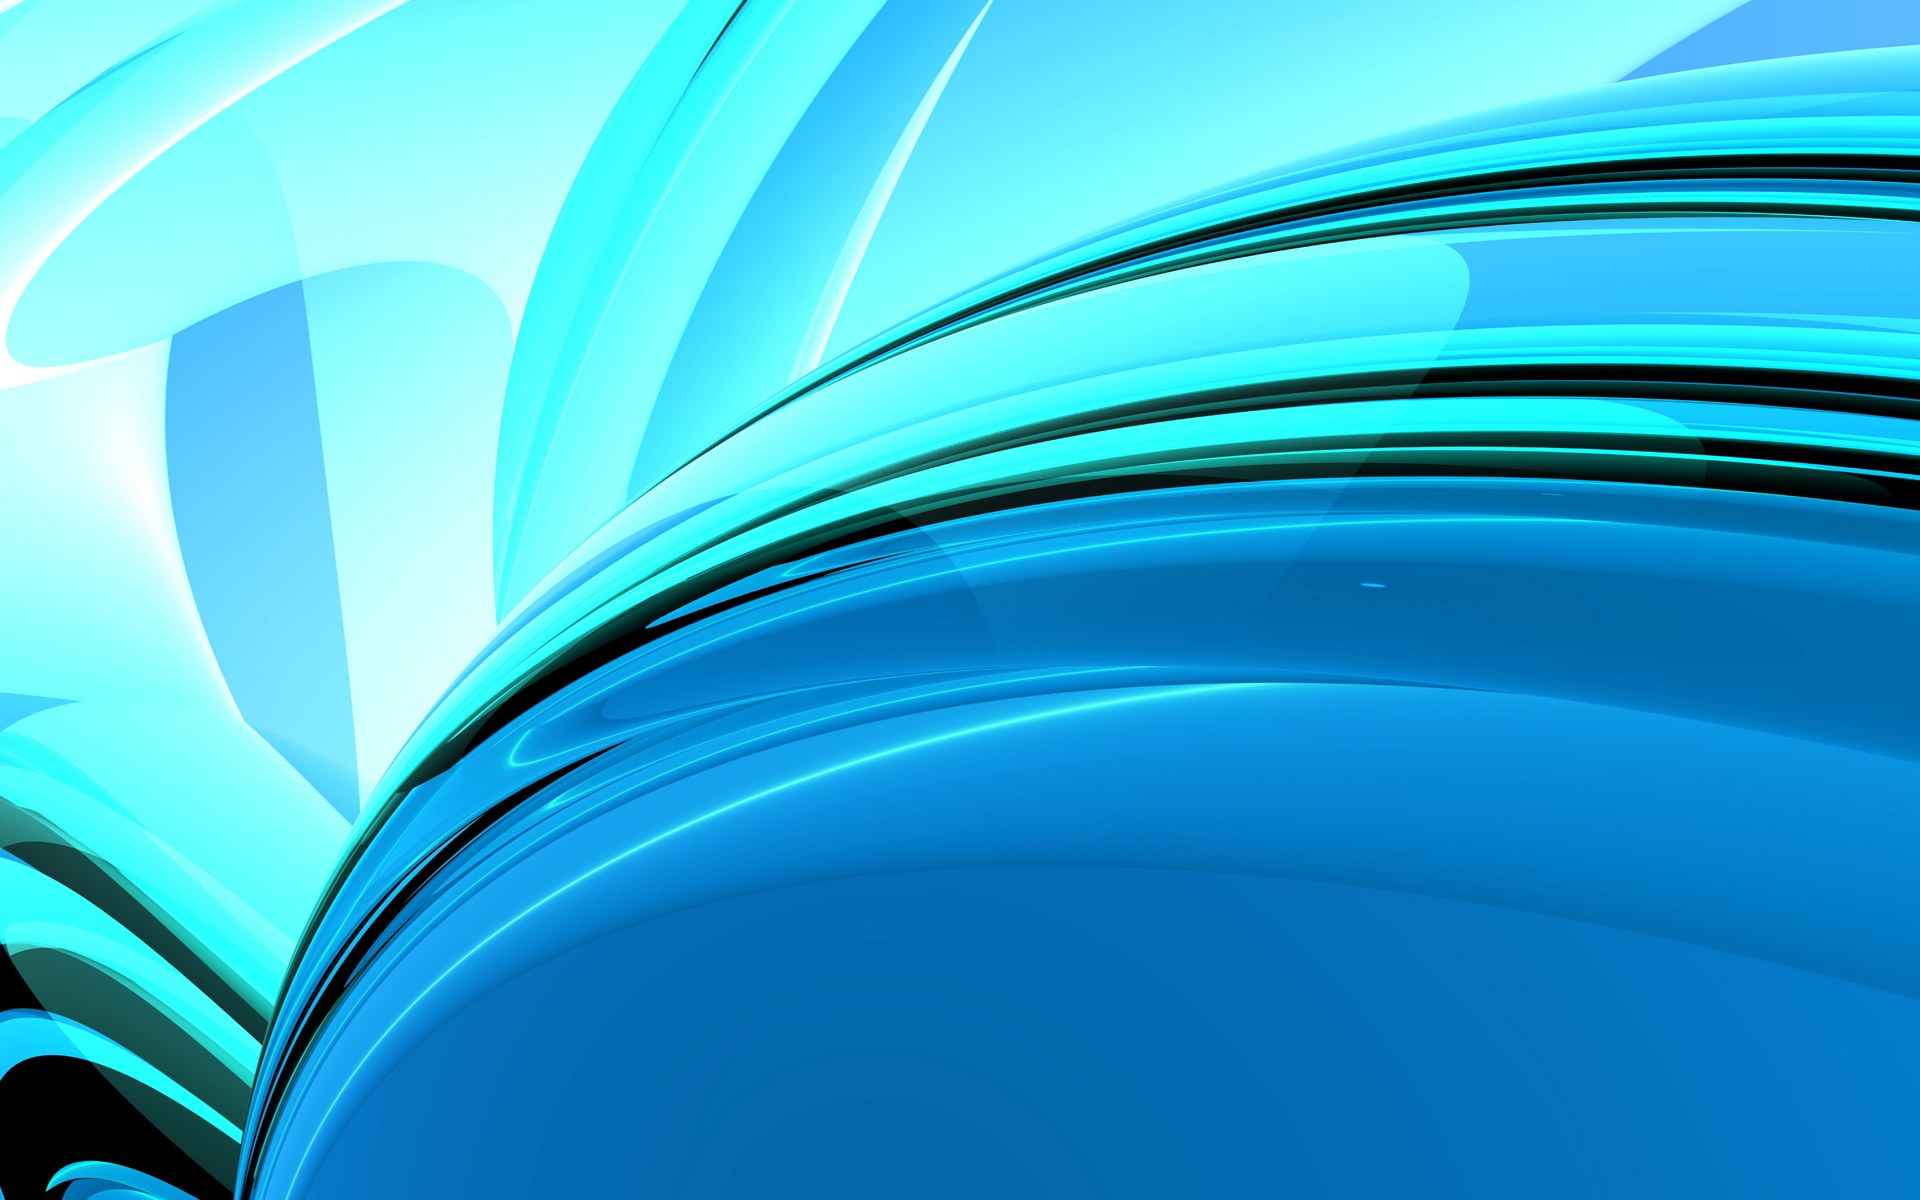 abstract blue backgrounds cartoon wallpapers background 20backgrounds 1920x1200